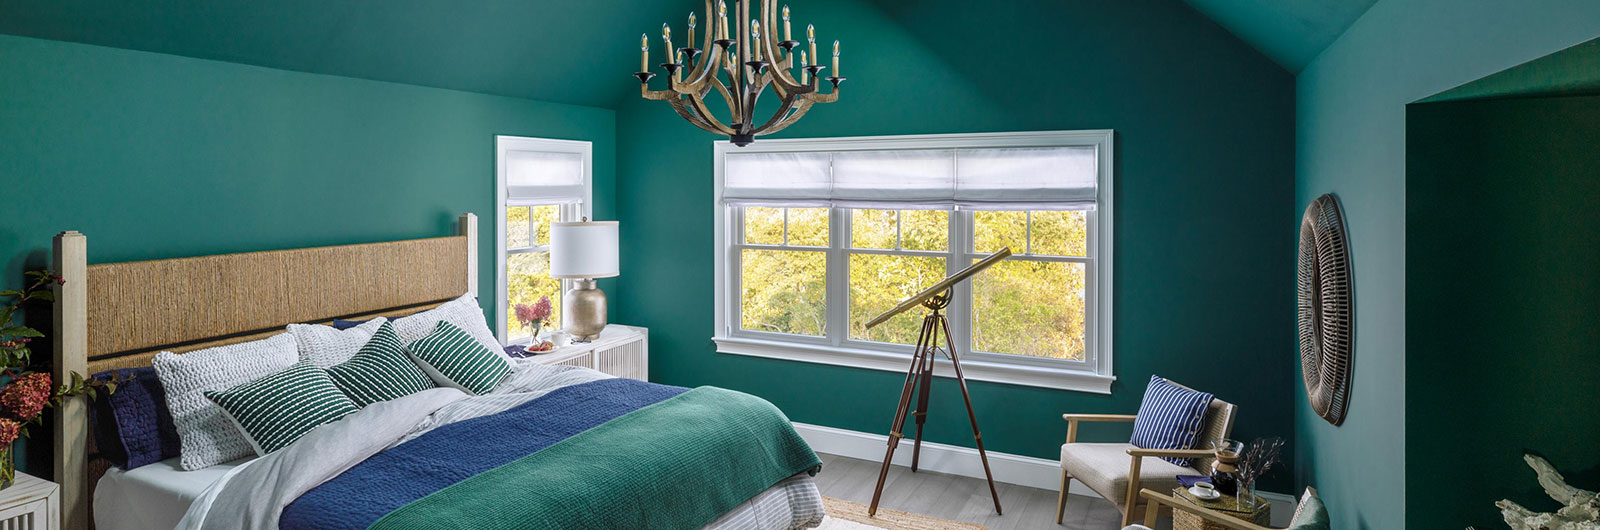 Dream Home 2021 bedroom with dark, emerald green walls showing bed and scenic view out window